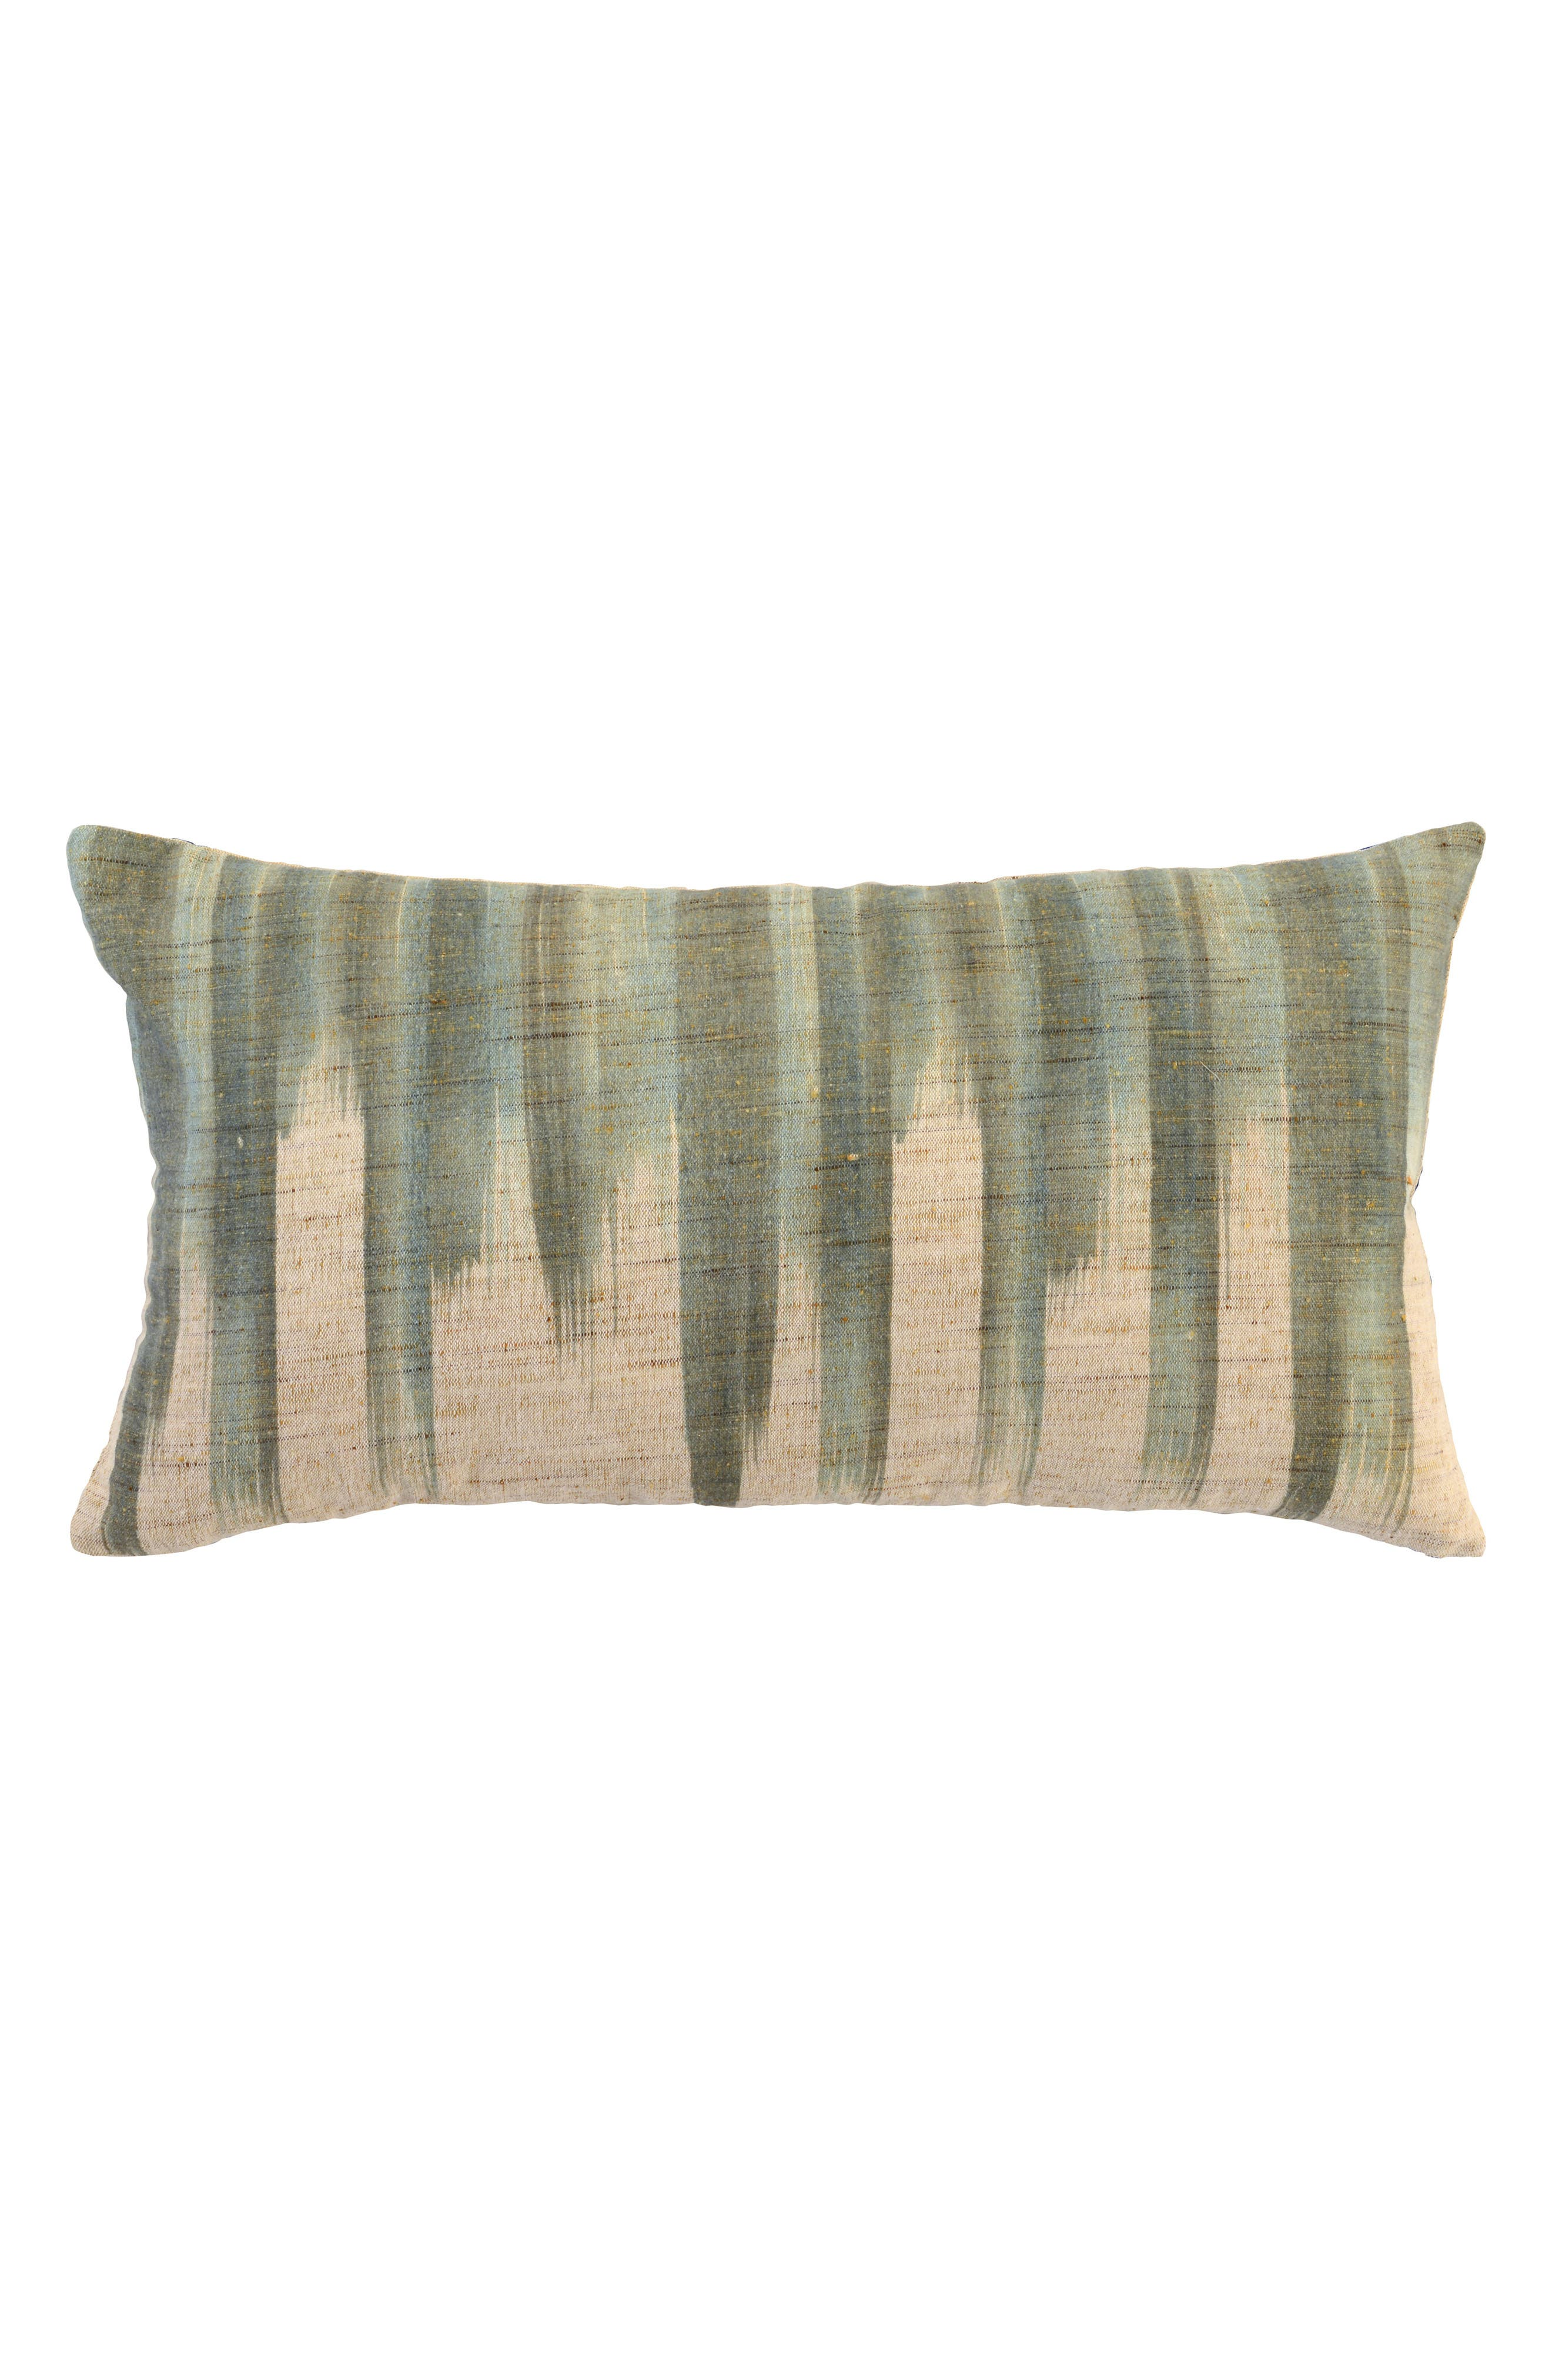 Hani Accent Pillow,                         Main,                         color, Beige/ Green